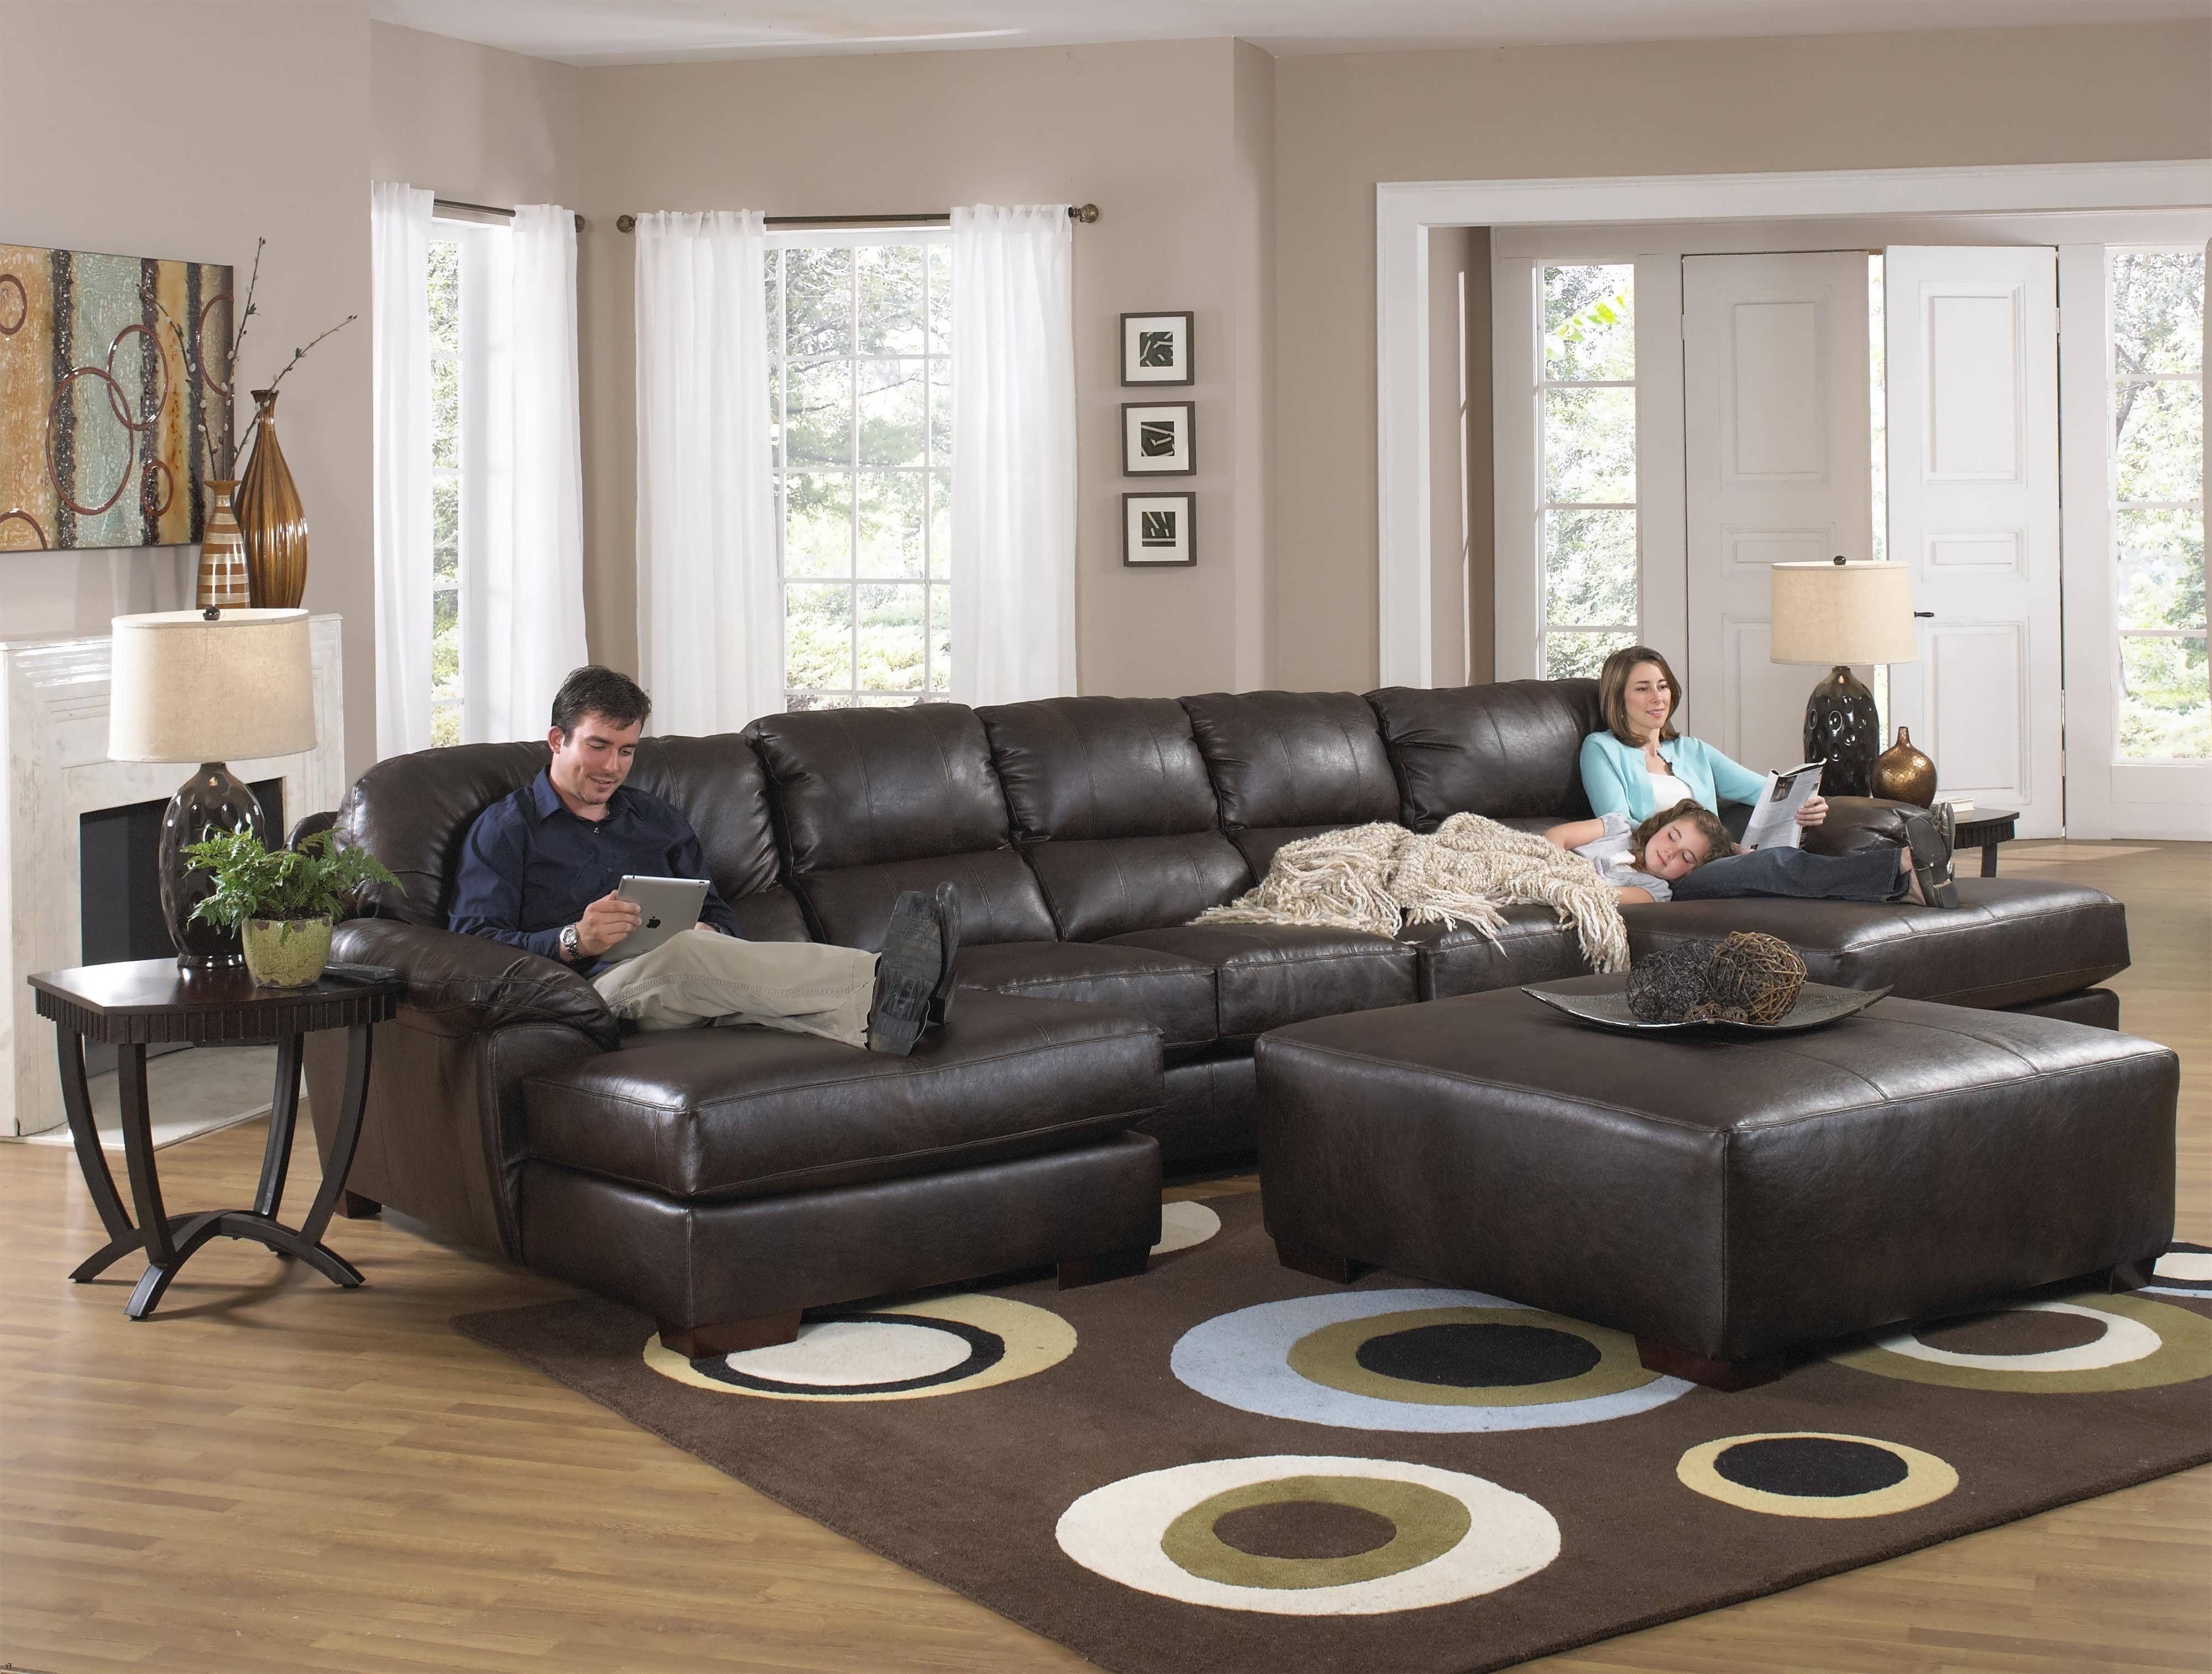 Latest Sofas : Grey Chaise Lounge Gray Chaise Lounge Gray Sectional Sofa Pertaining To Leather Couches With Chaise Lounge (View 5 of 15)